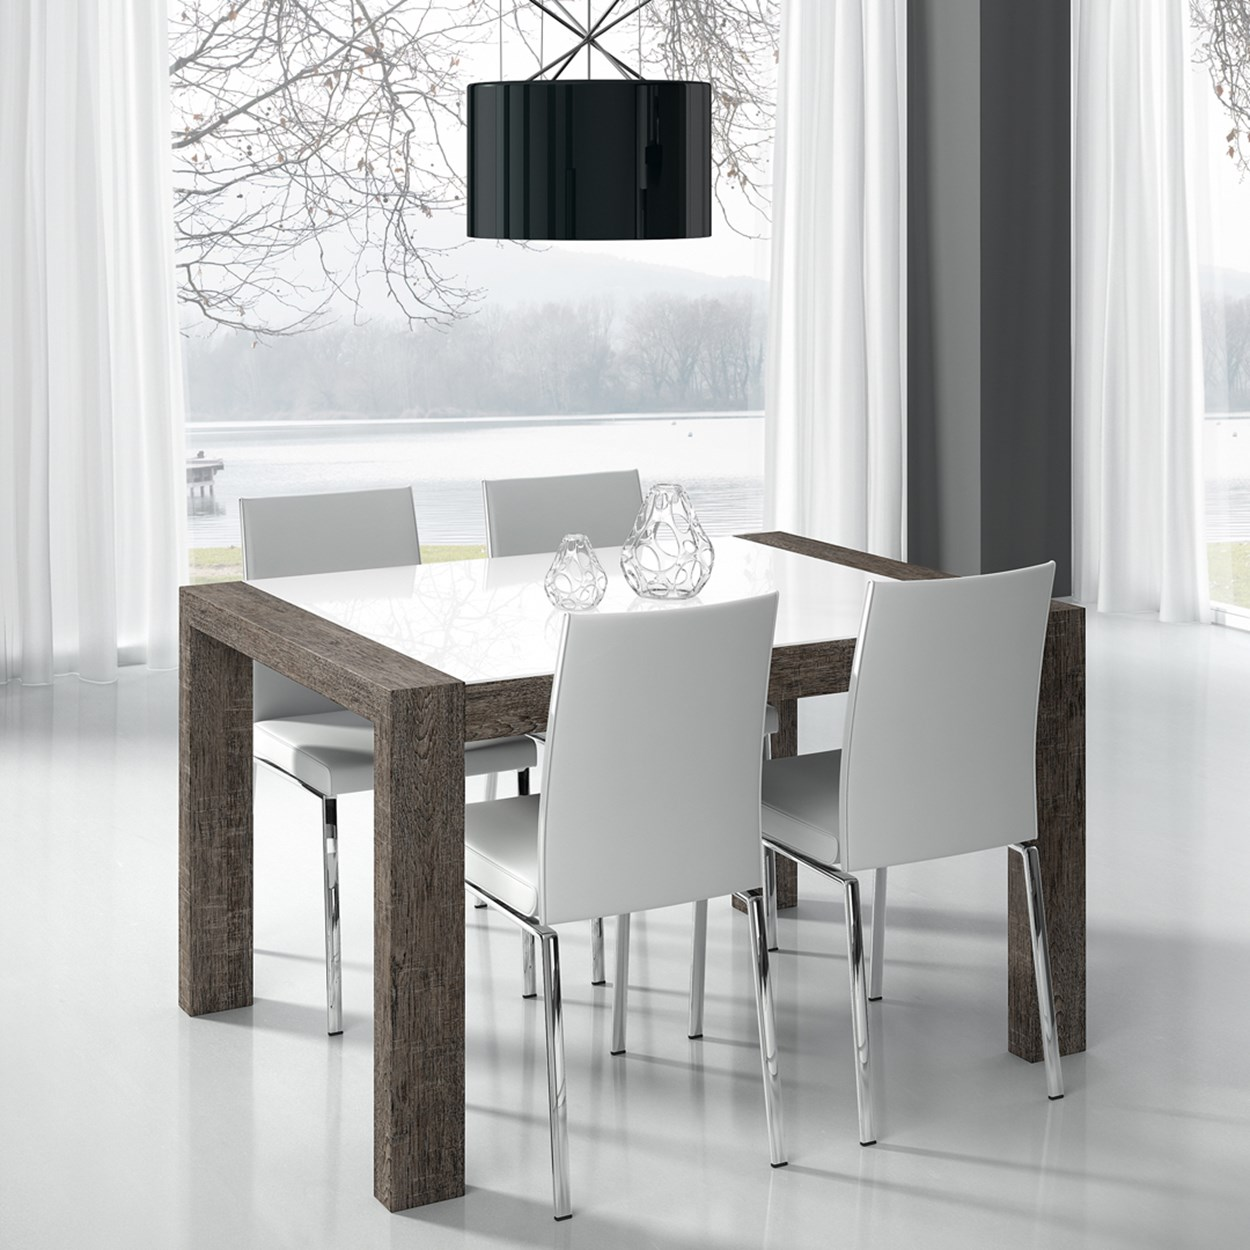 BAIX MODULS-DINING TABLE-4.jpg